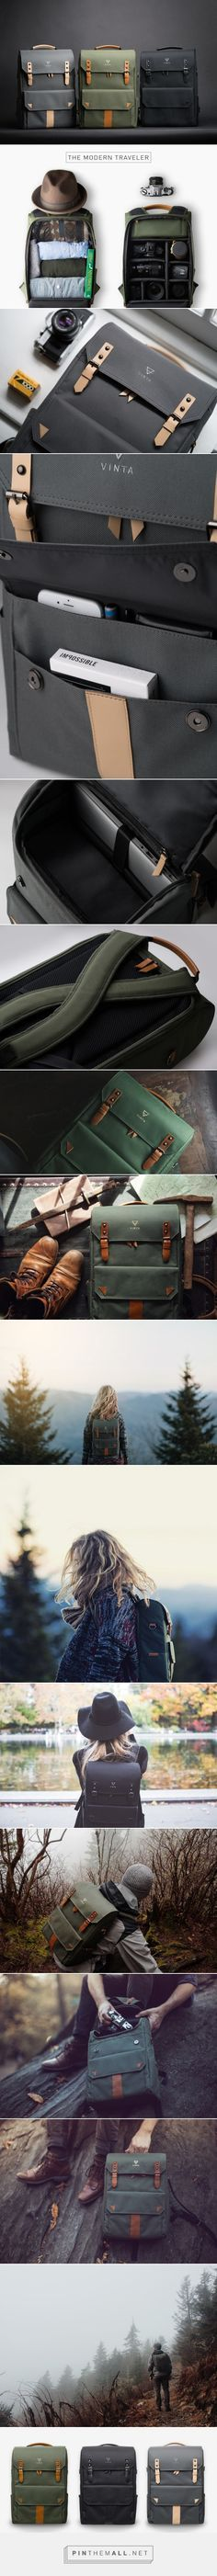 A Travel & Camera Bag for Everyday Adventures